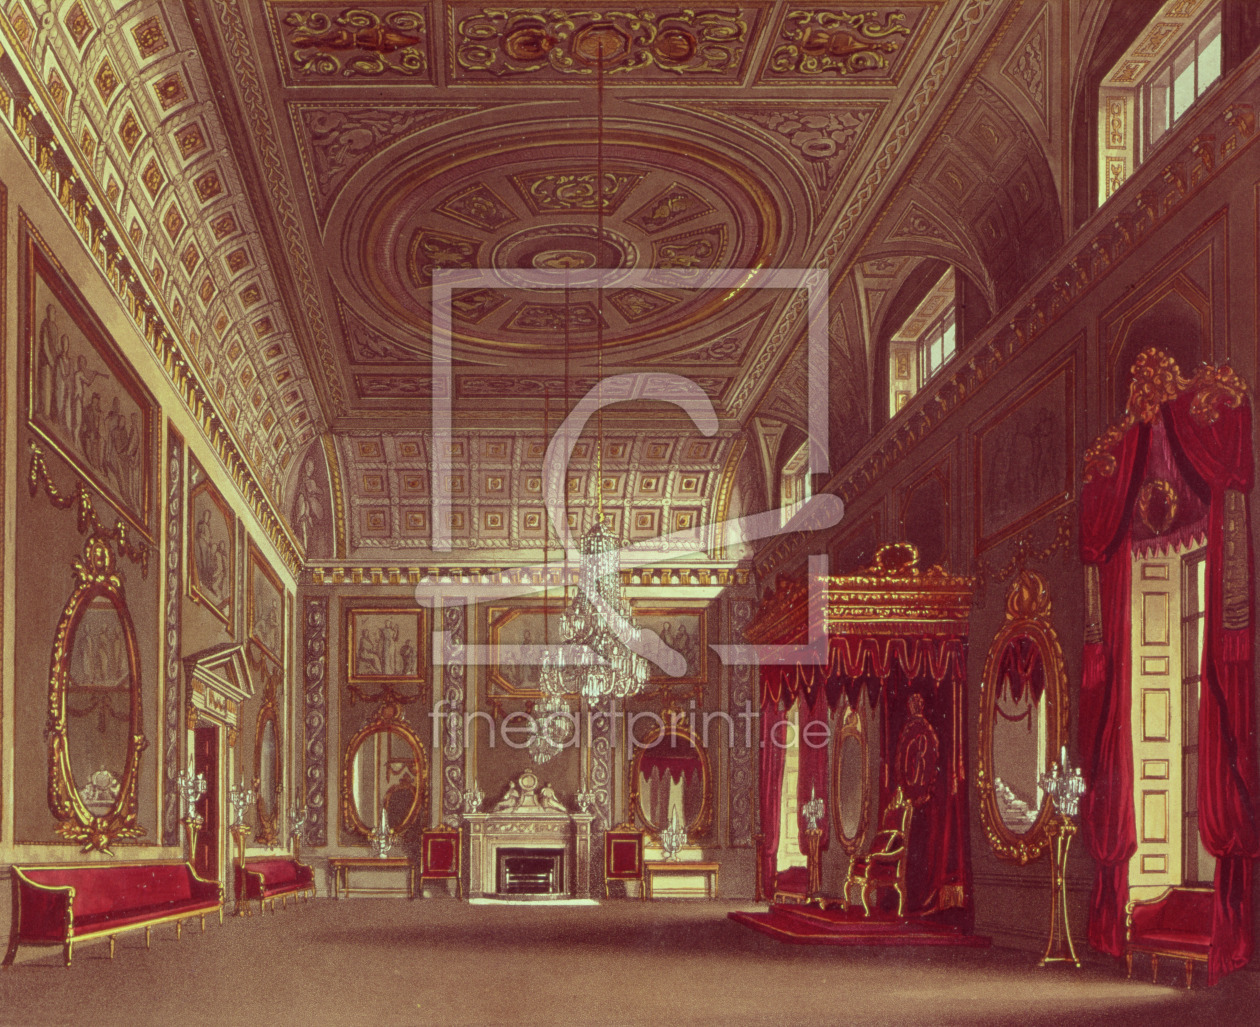 Bild-Nr.: 31002061 The Saloon, Buckingham Palace from Pyne's 'Royal Residences', 1818 erstellt von Pyne, William Henry